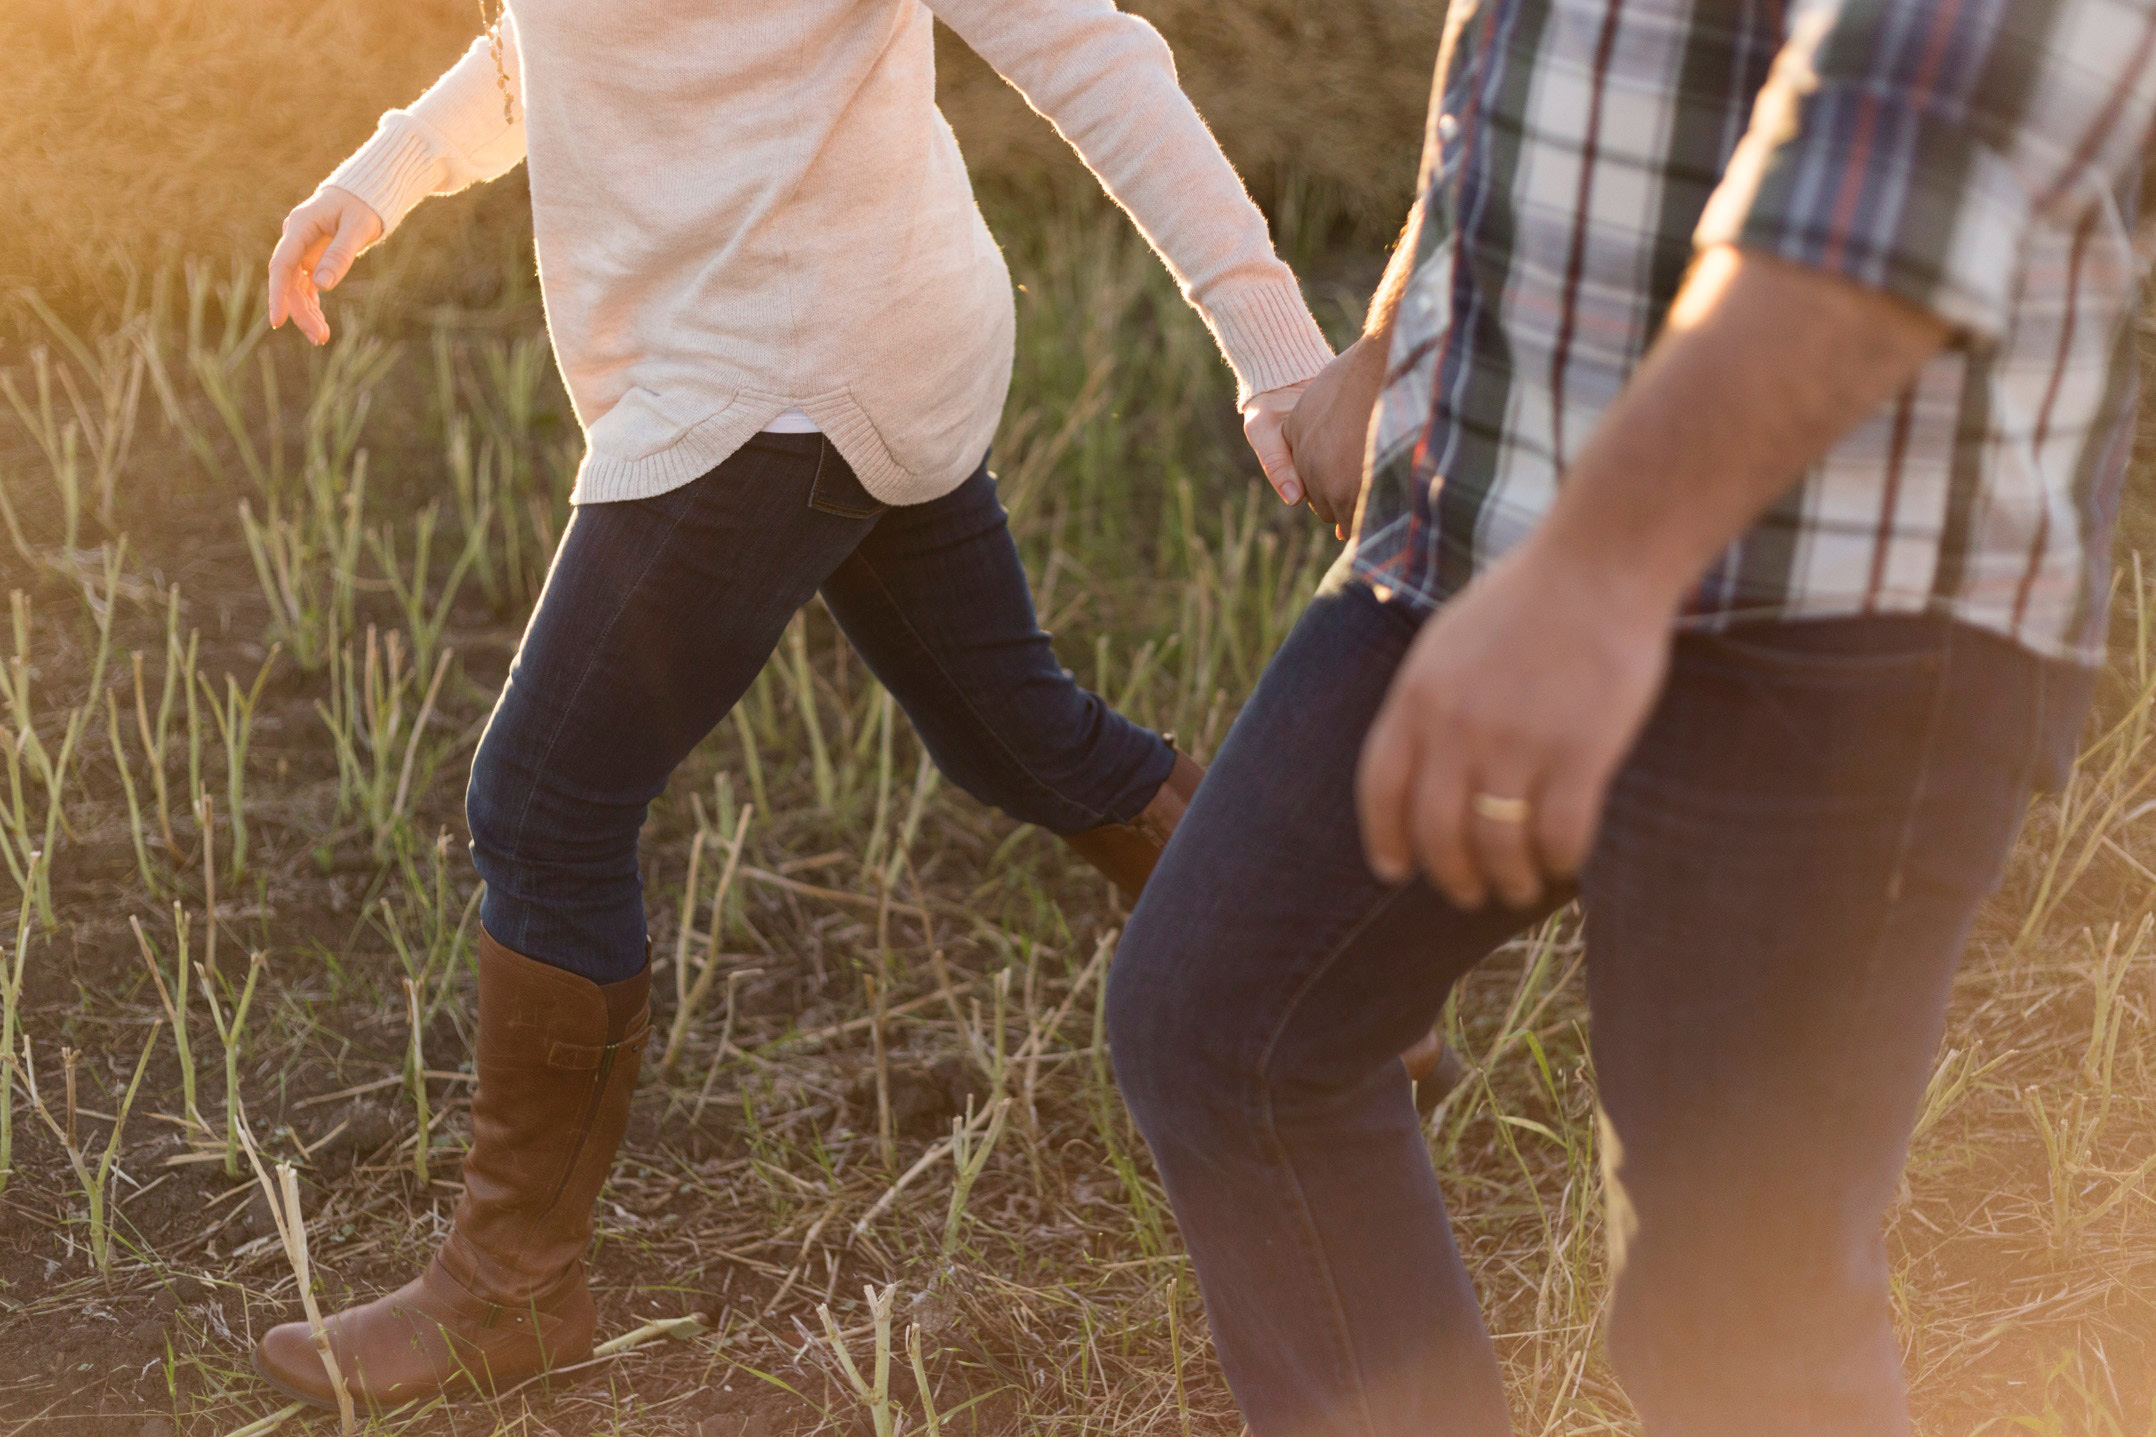 Reaching your recommended exercise per week through walking